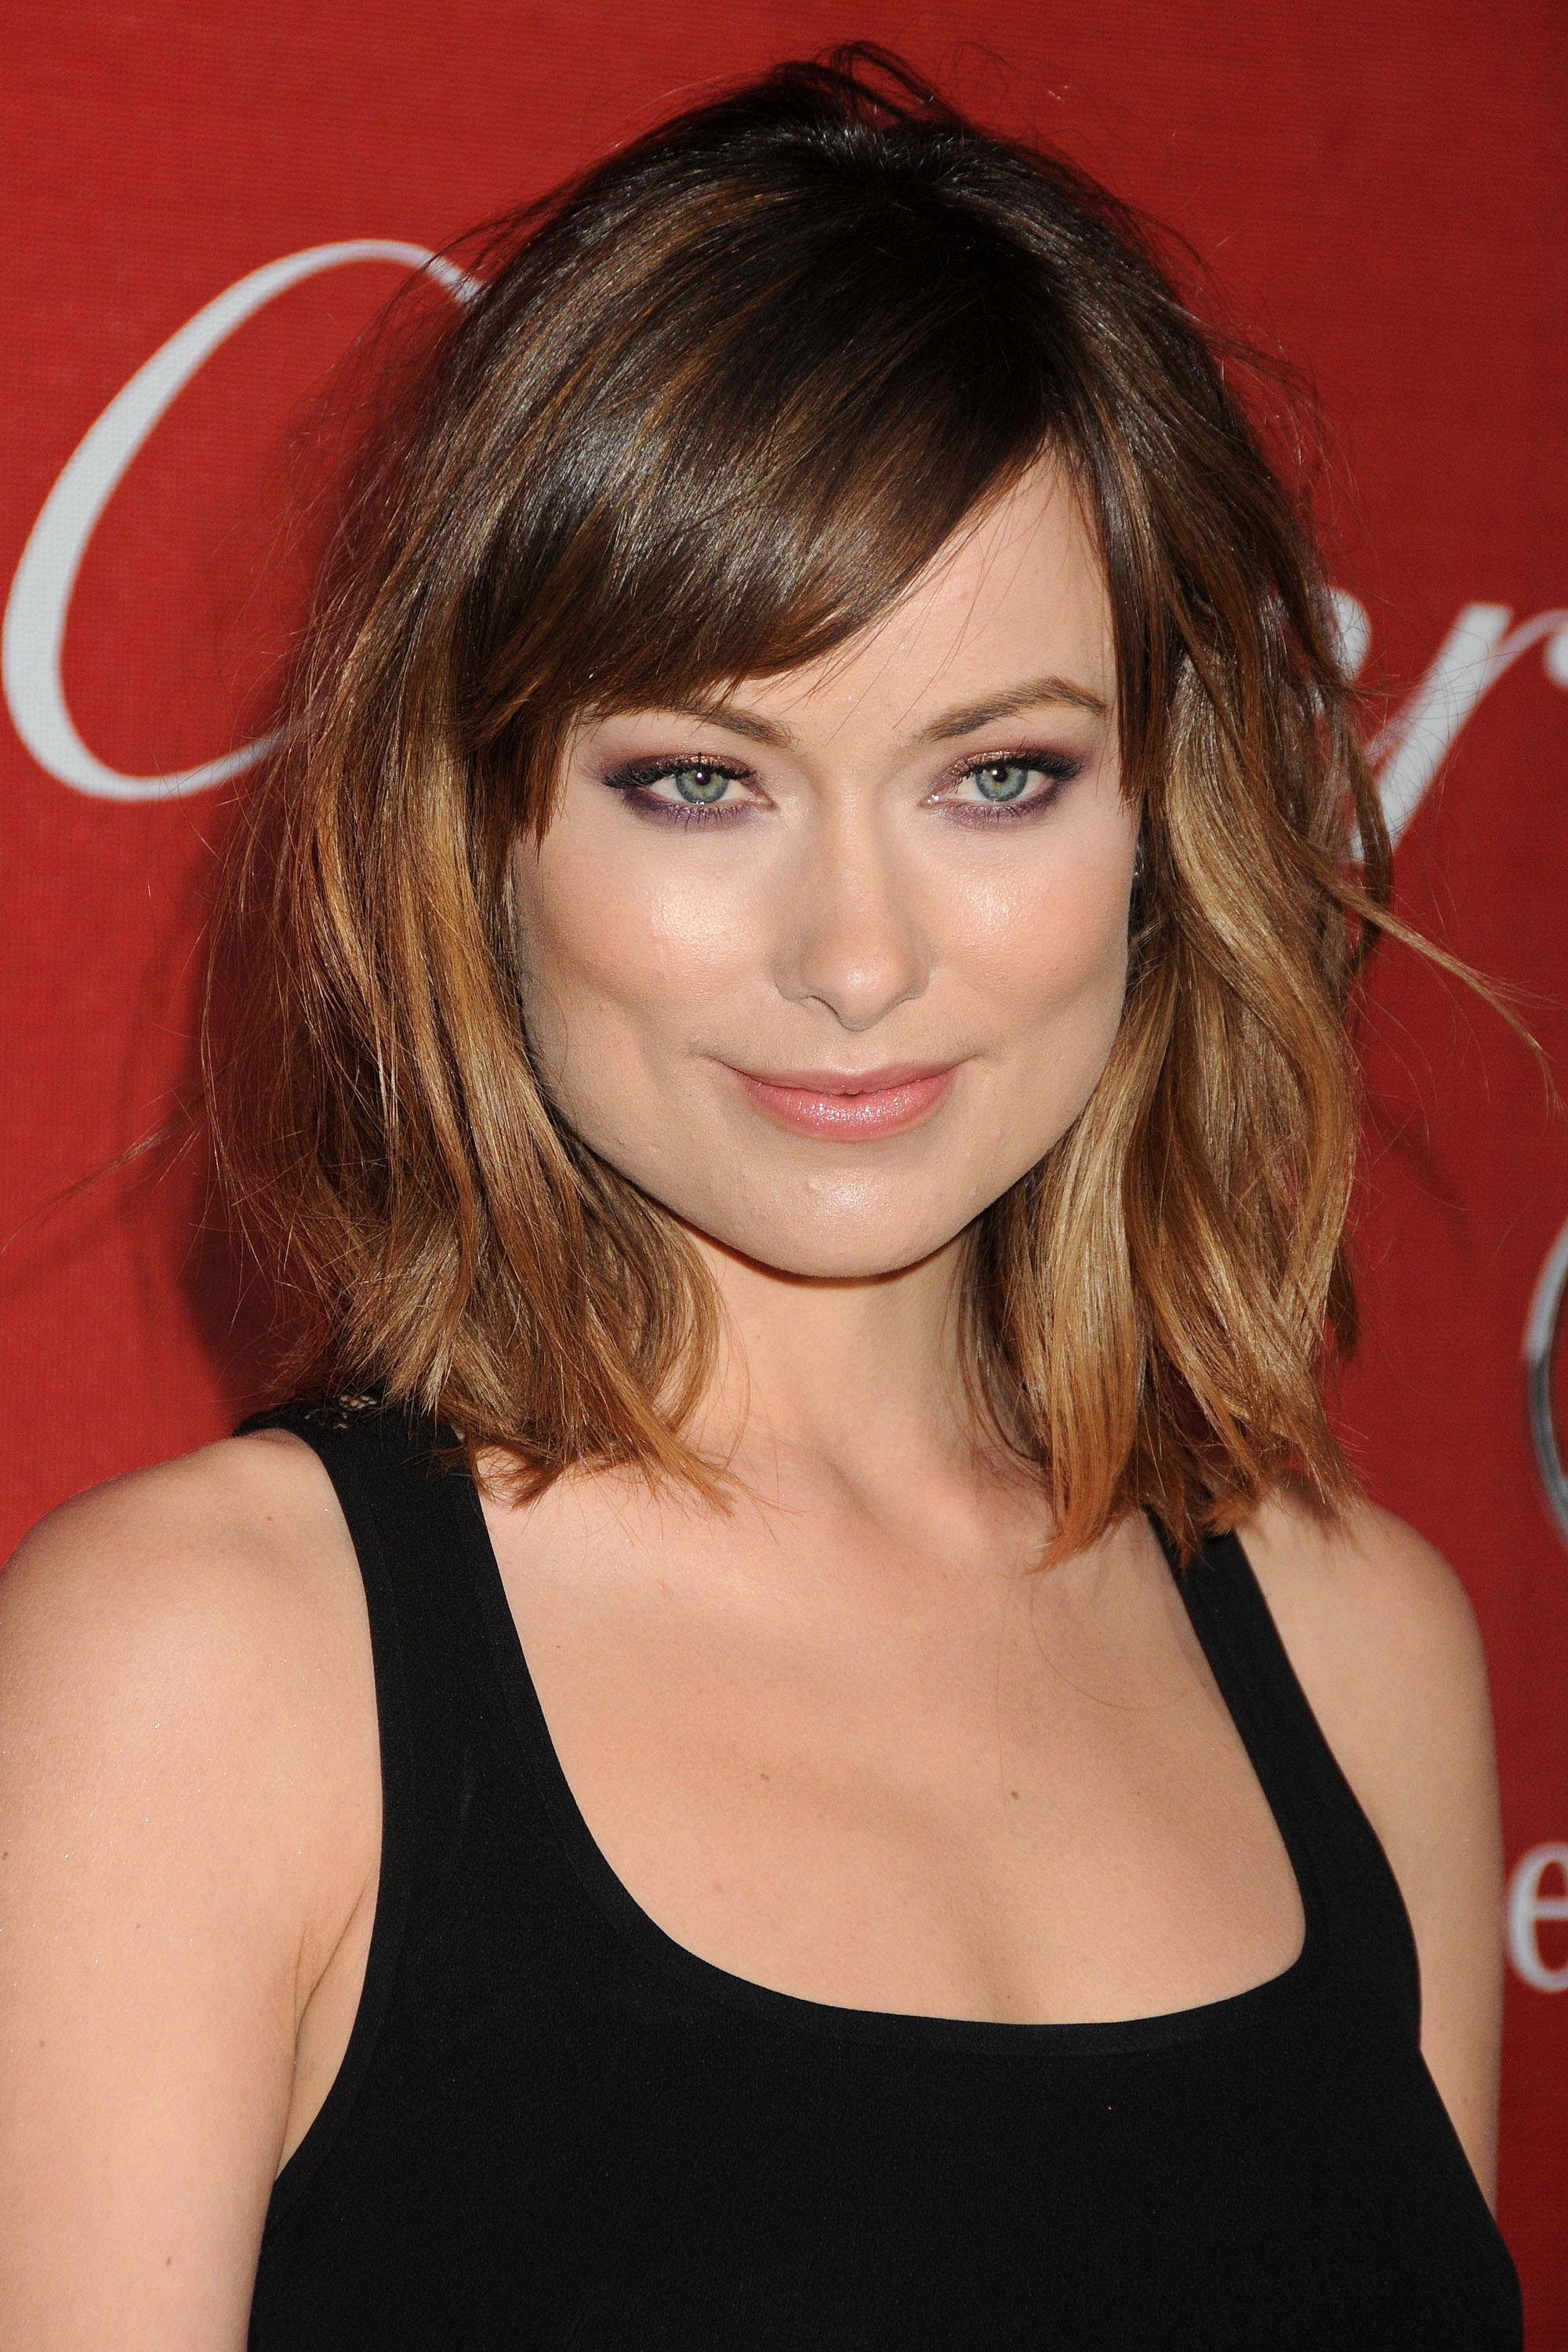 Digitalminx.com - Actr... Olivia Wilde